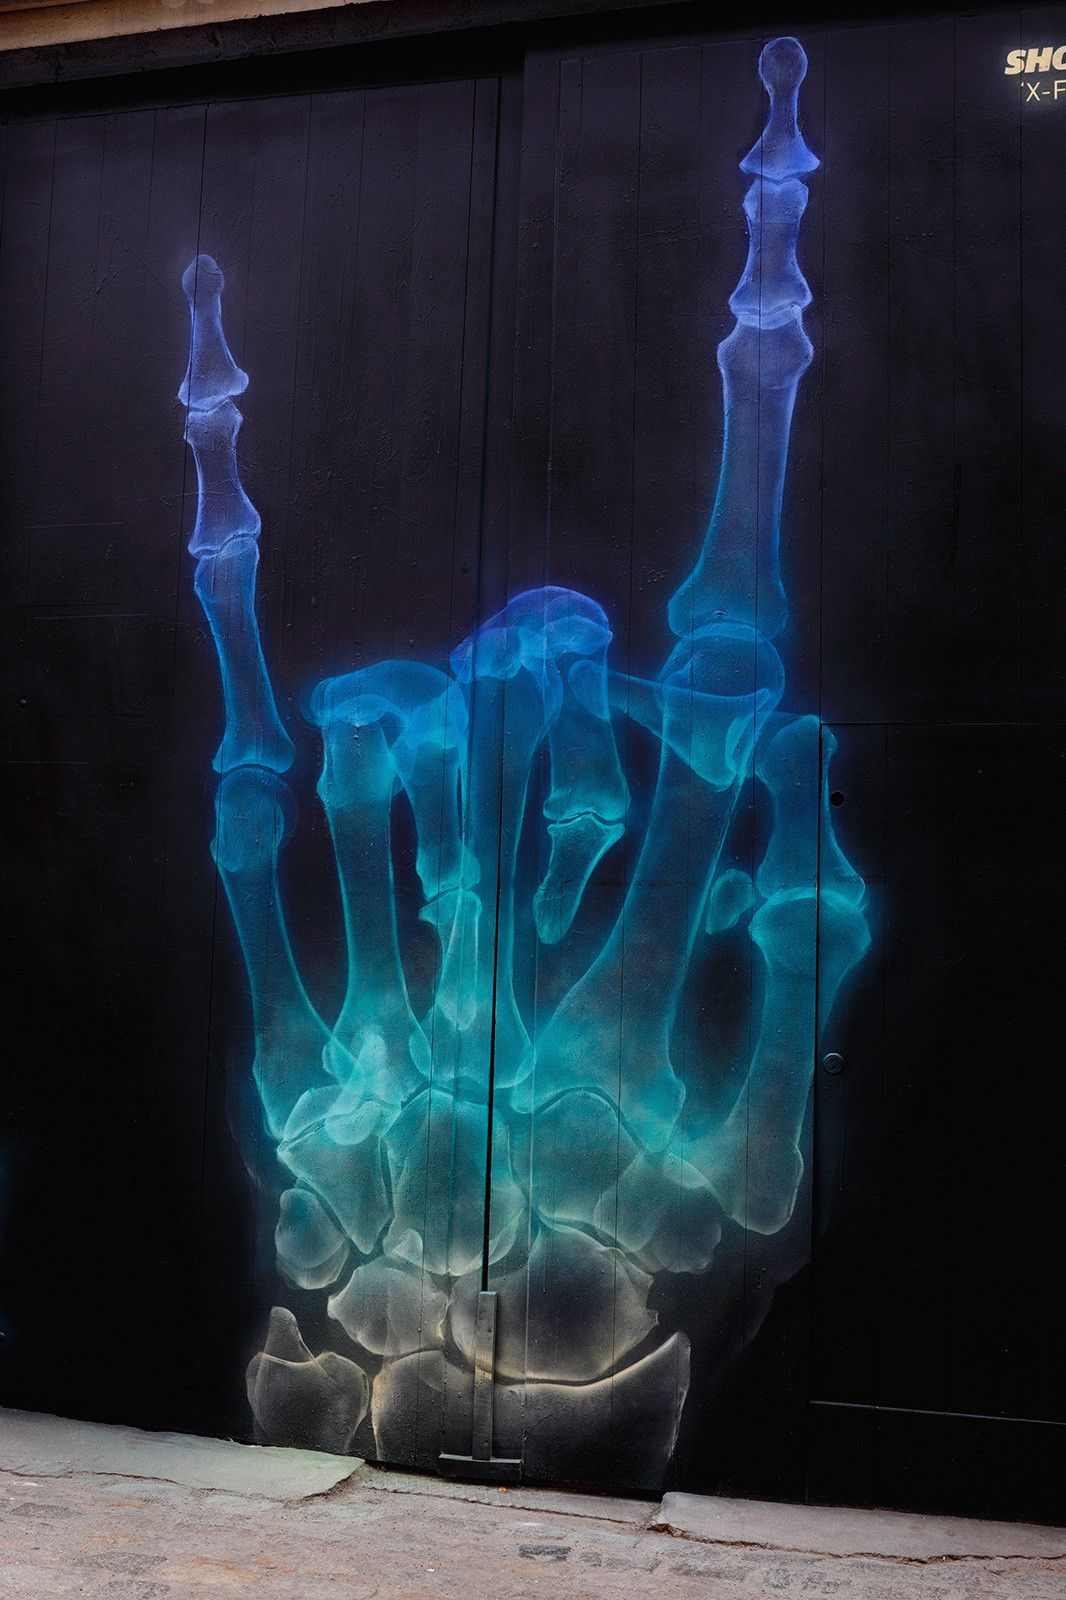 X funk by shok 1 in london 2015